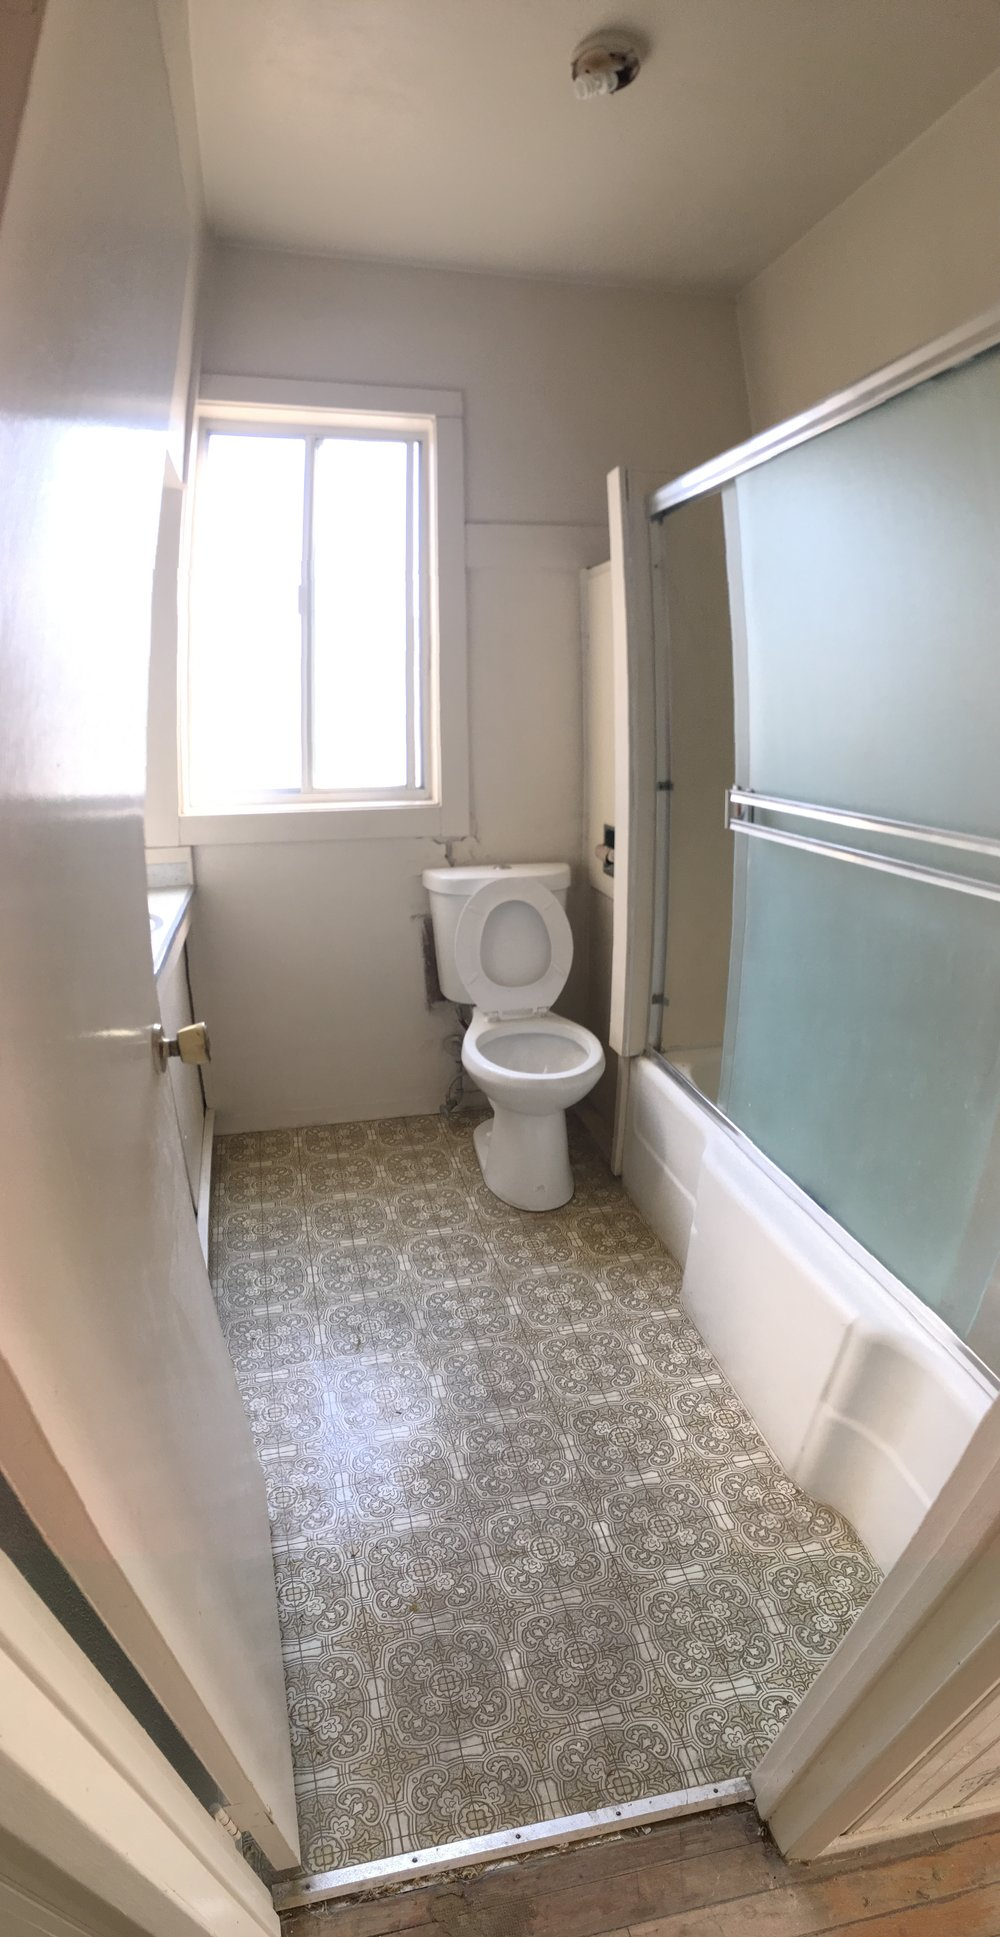 Main bathroom with poorly placed toilet